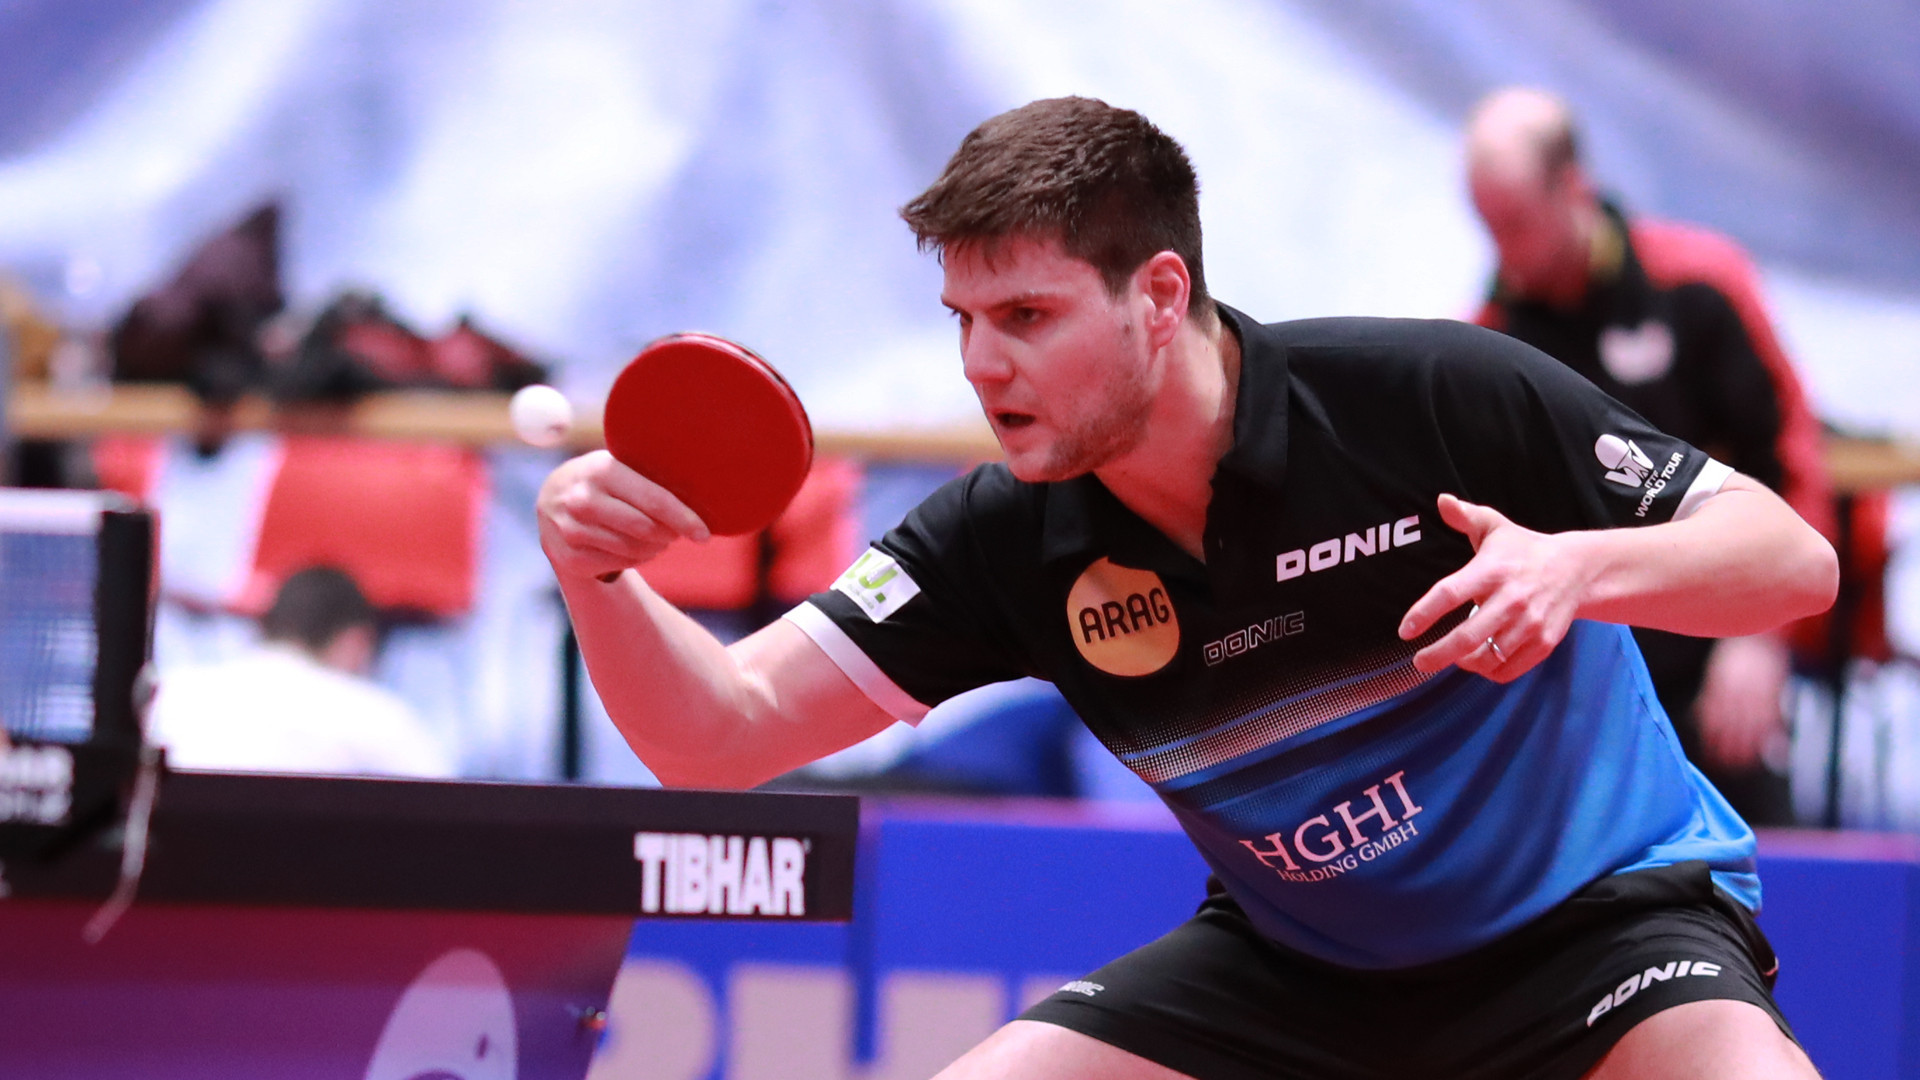 Top seed Dimitrij Ovtcharov is through to the semi-finals of the ITTF-Europe Top 16 Cup ©ITTF/Rémy Gros